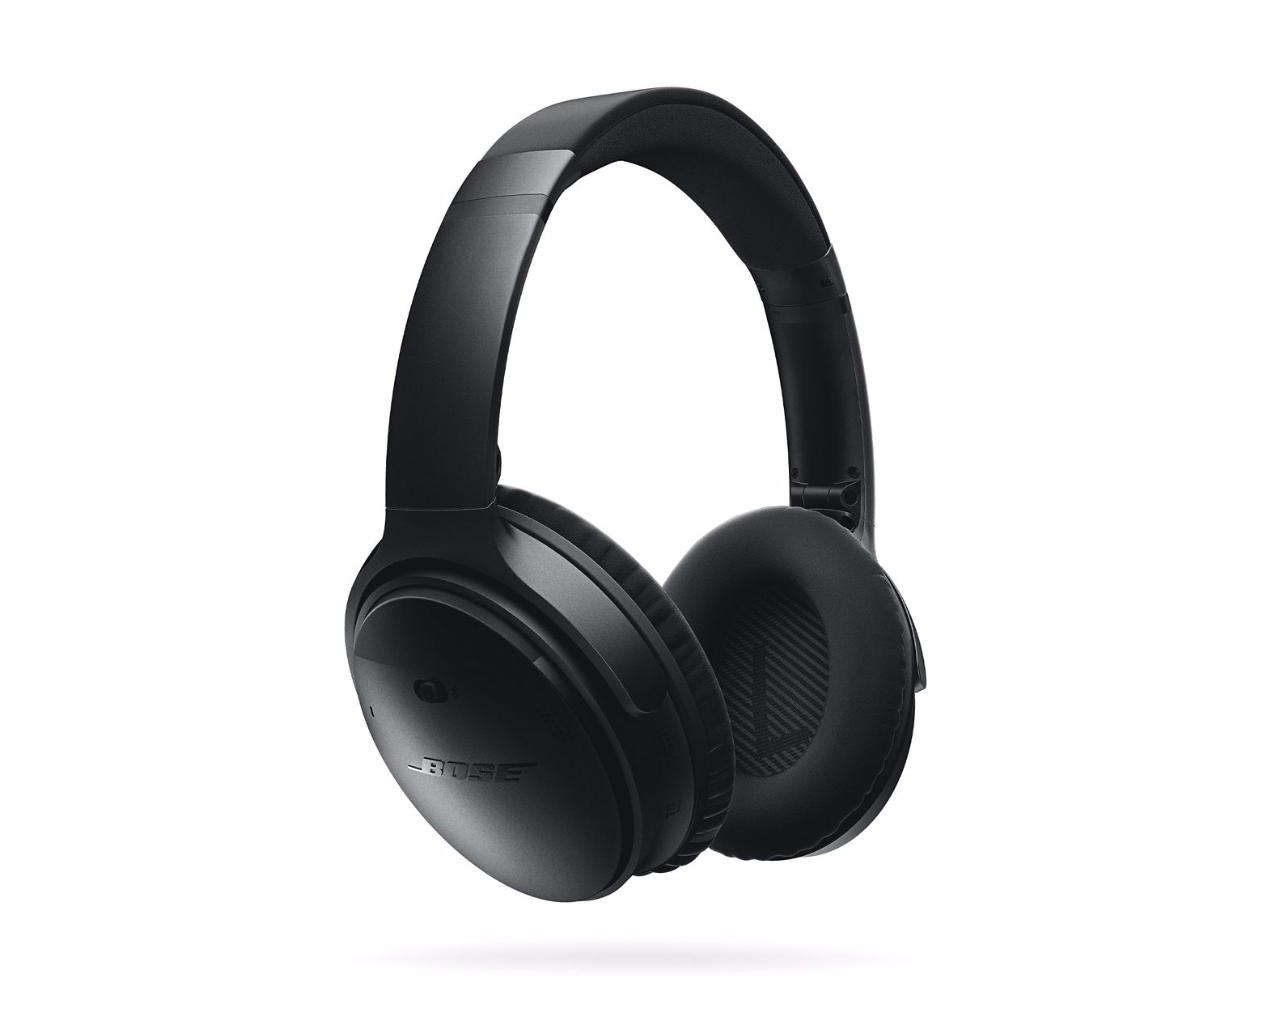 bose earphones sale. bose quietcomfort 35 on sale for $150 with free shipping to store, extreme ymmv now earphones